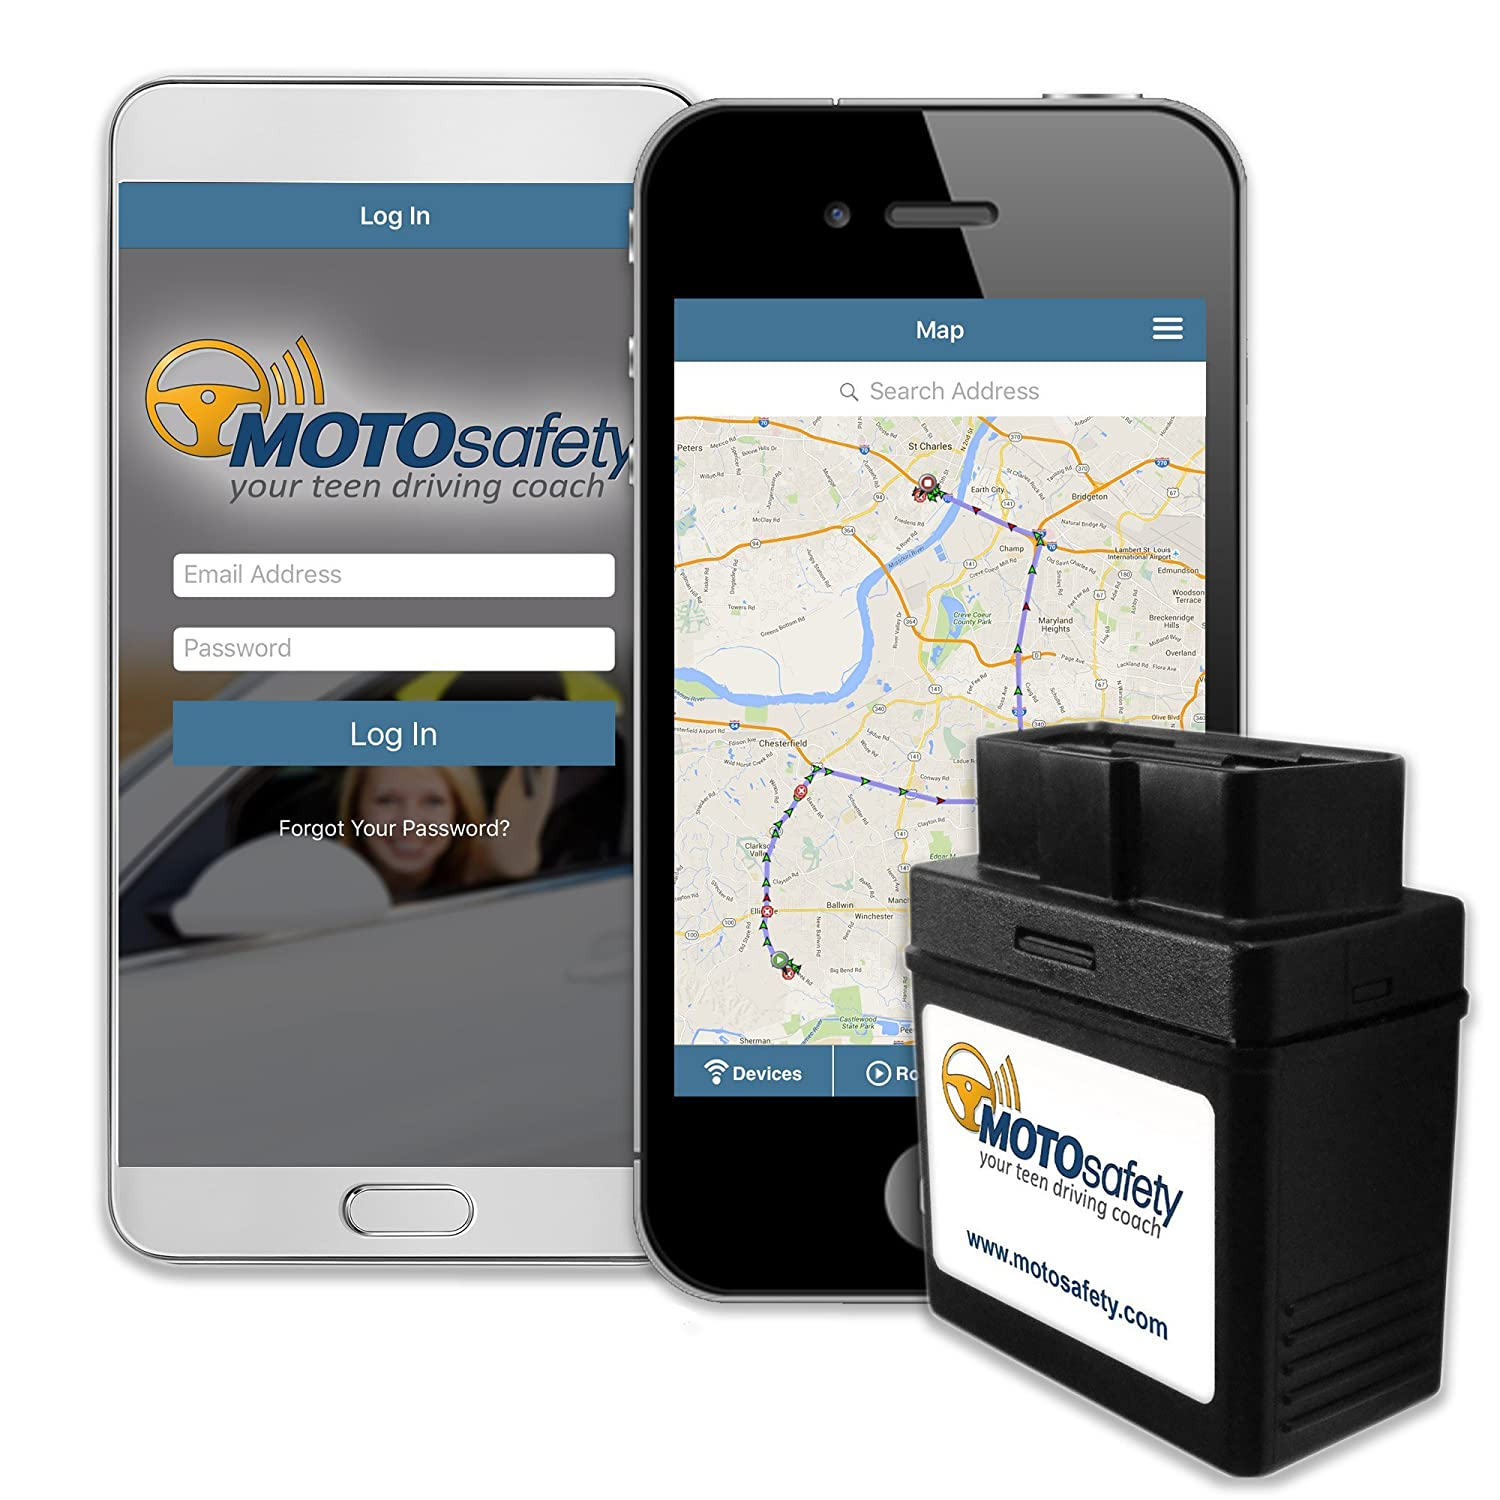 MOTOsafety GPS Tracker & Driving Coach, Vehicle Tracking System & OBD GPS Device MPVAS1